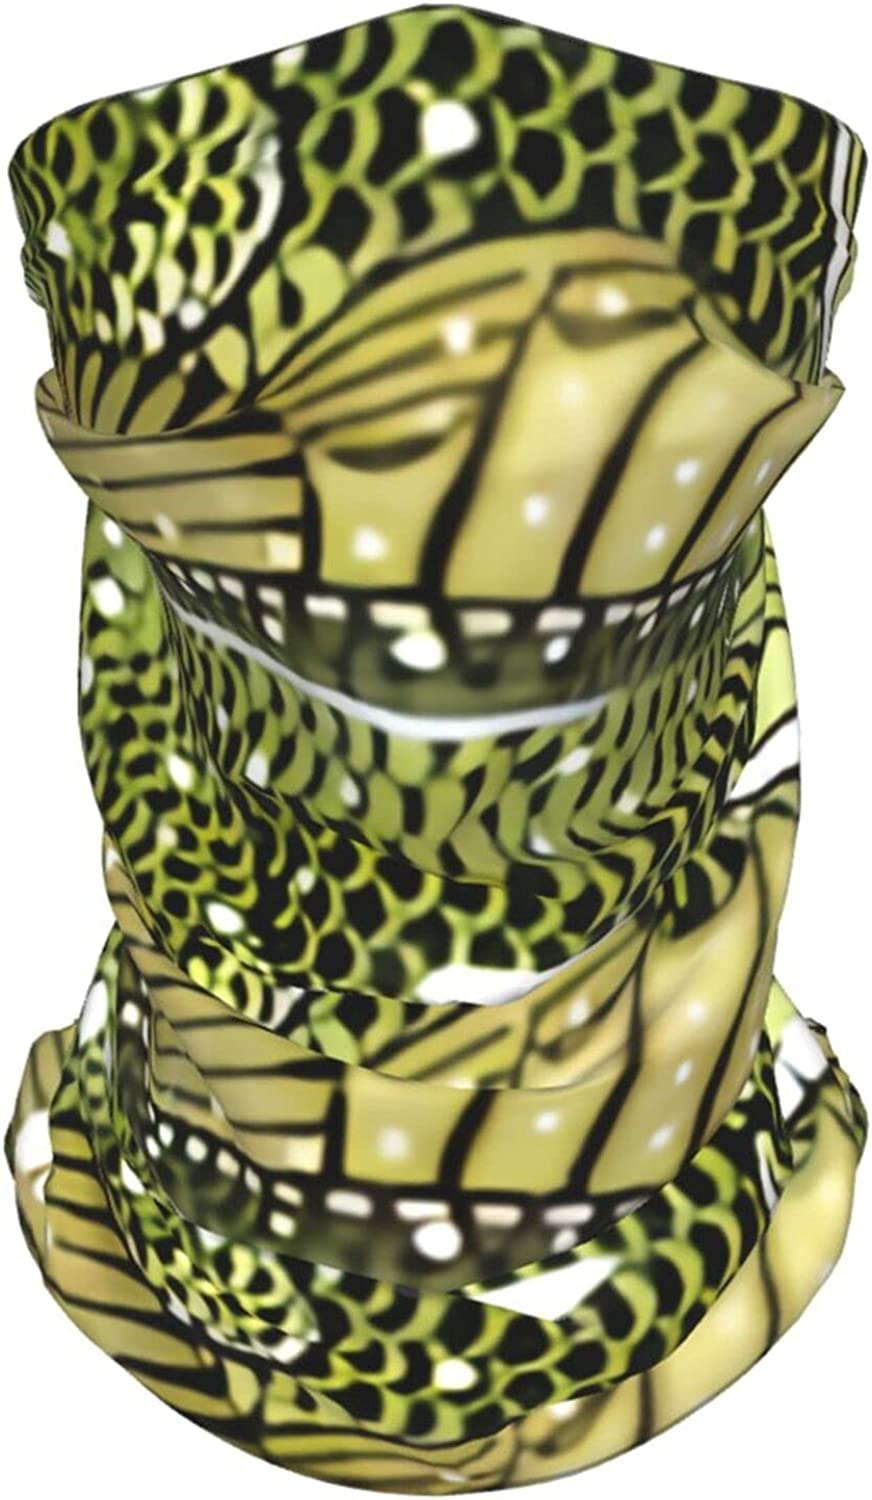 Neck Heater Largemouth Bass Animal Summer Ice Silk Breathable Face Mask Neck Gaiter Scarf Bandanas for Fishing,Hiking,Running,Motorcycle and Daily Wear